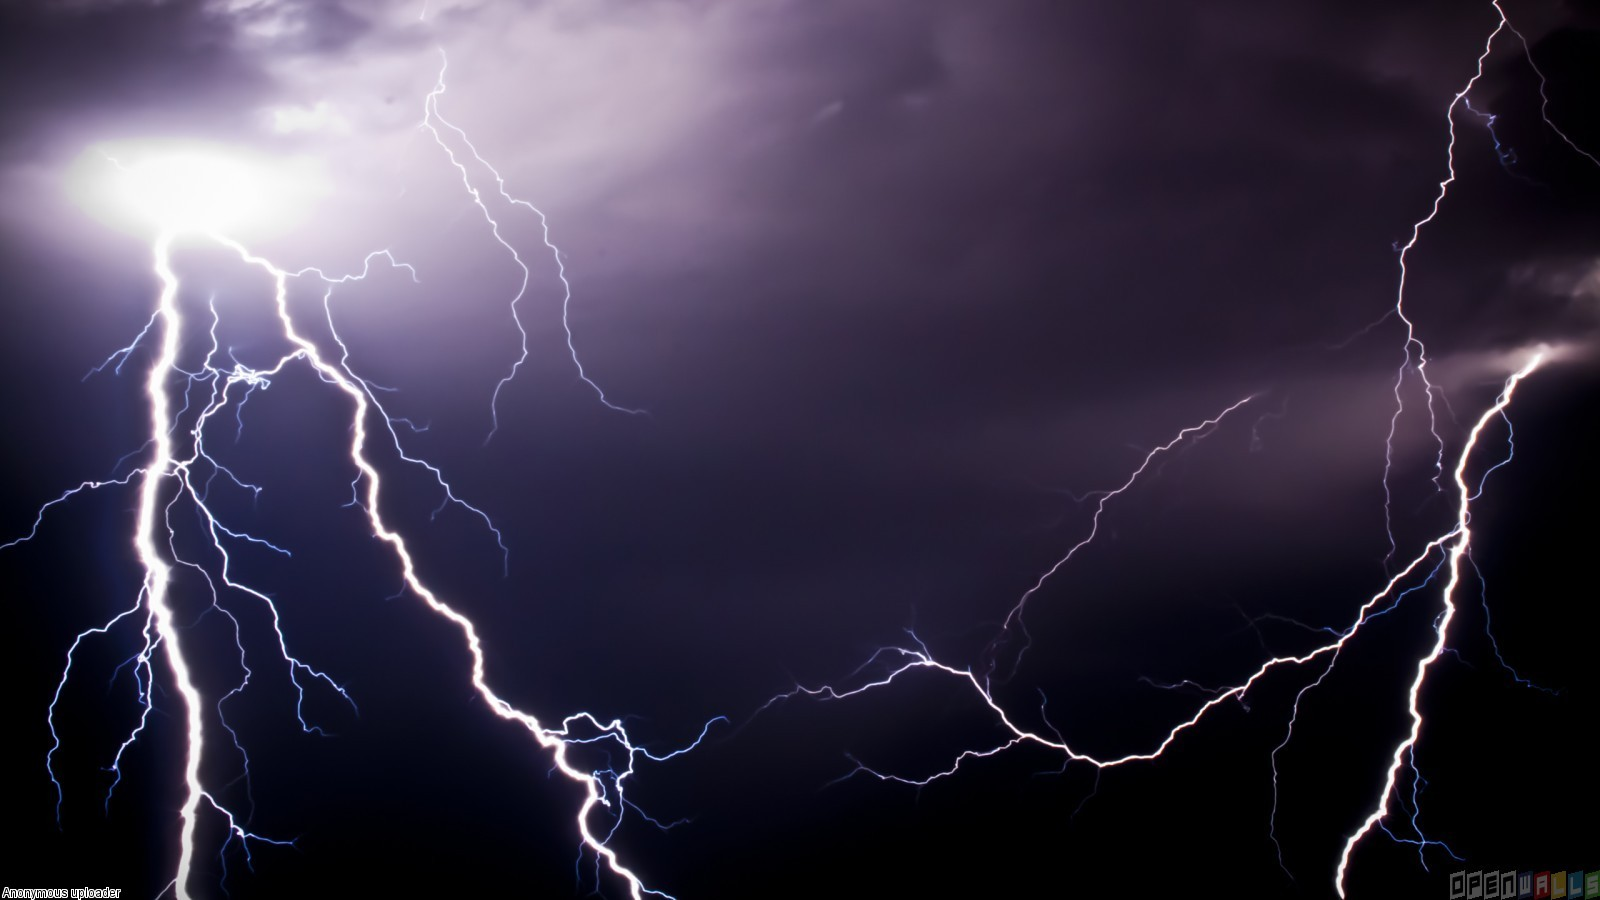 Two lightning strikes wallpaper 15586   Open Walls 1600x900